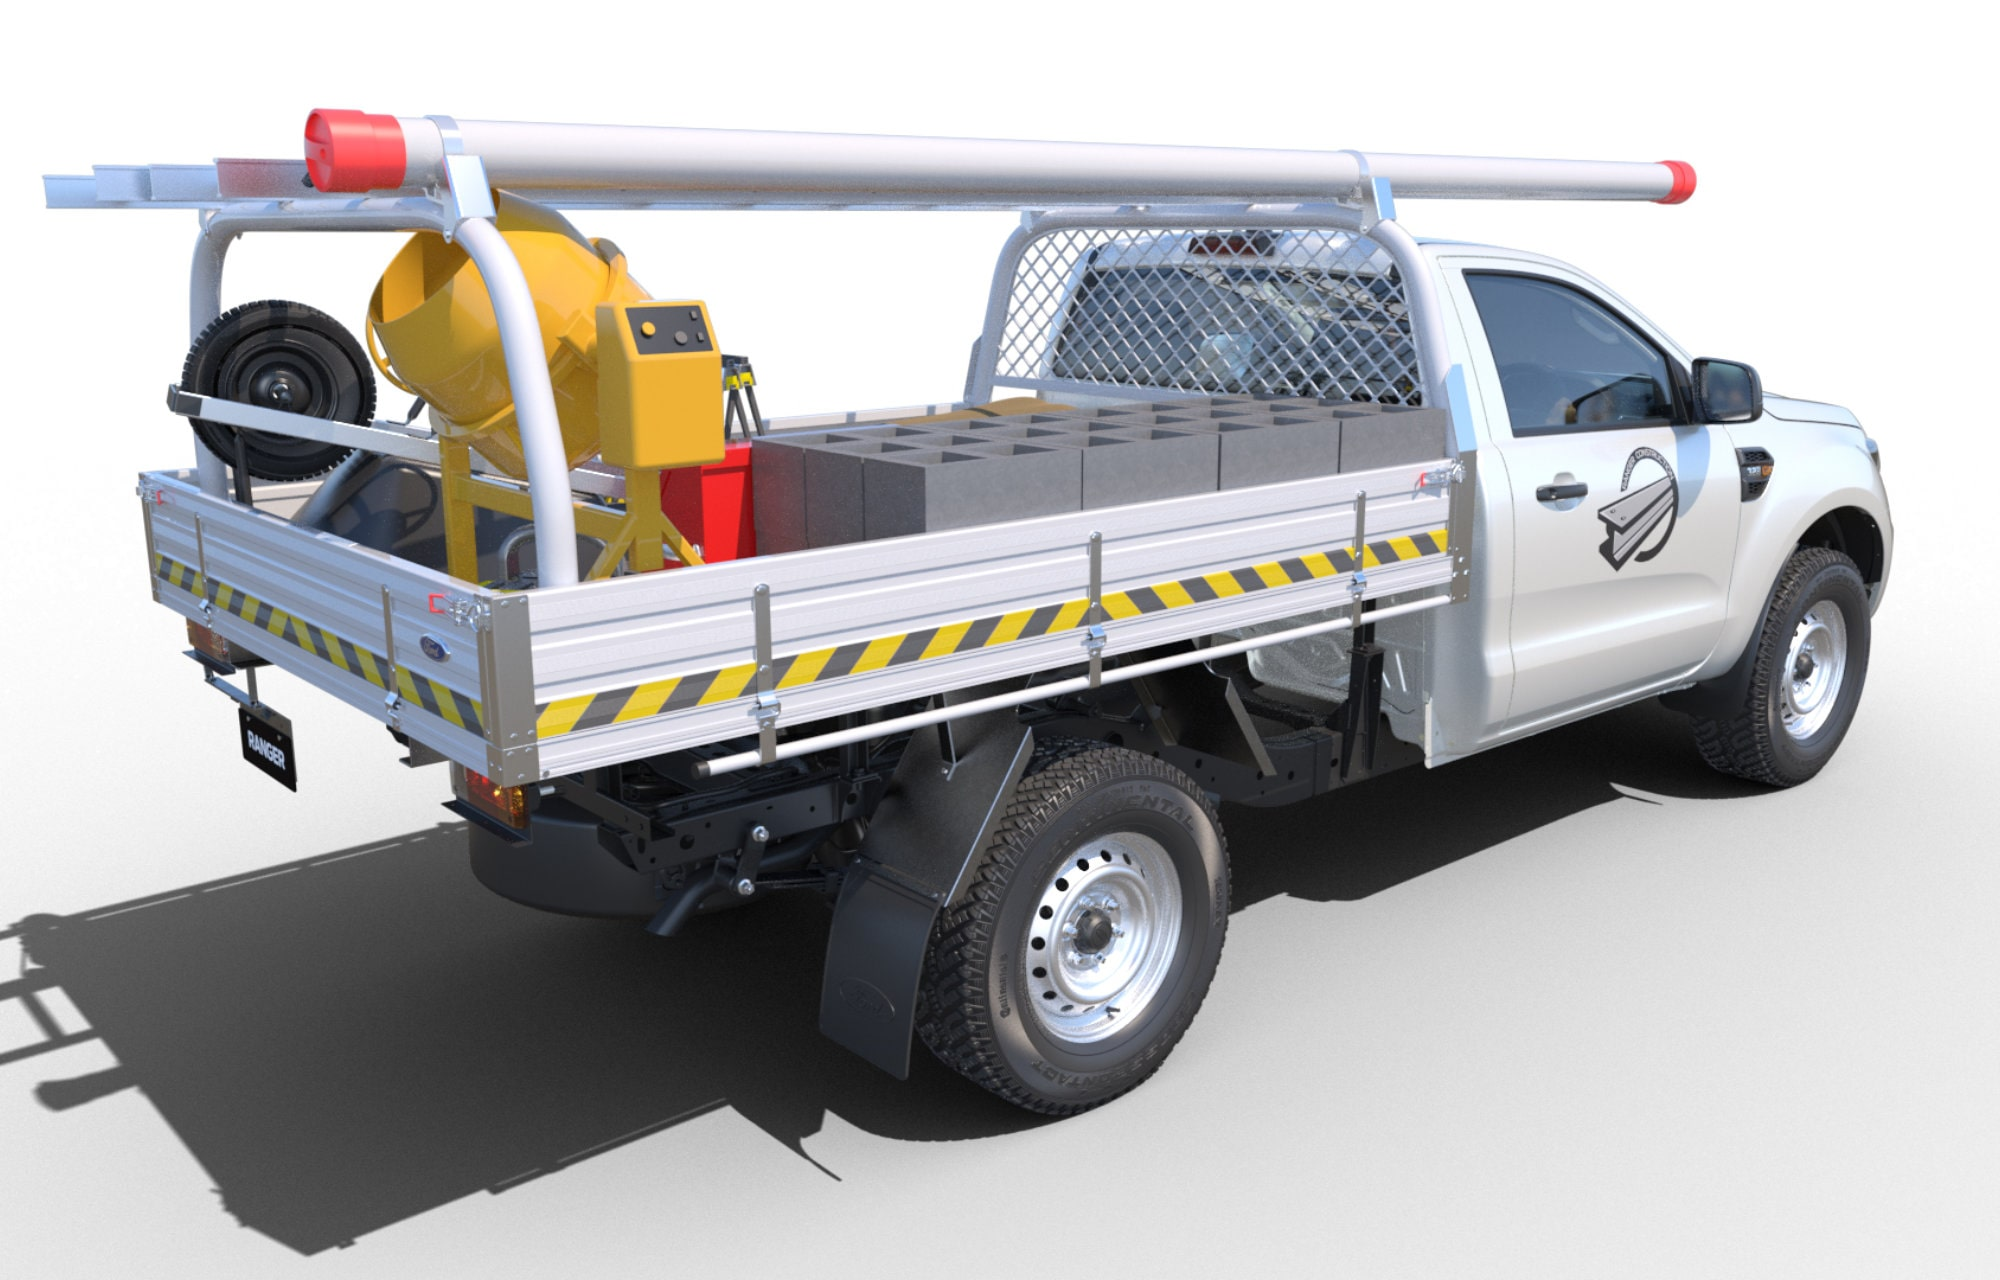 Ford Ranger Chassis Cab Model